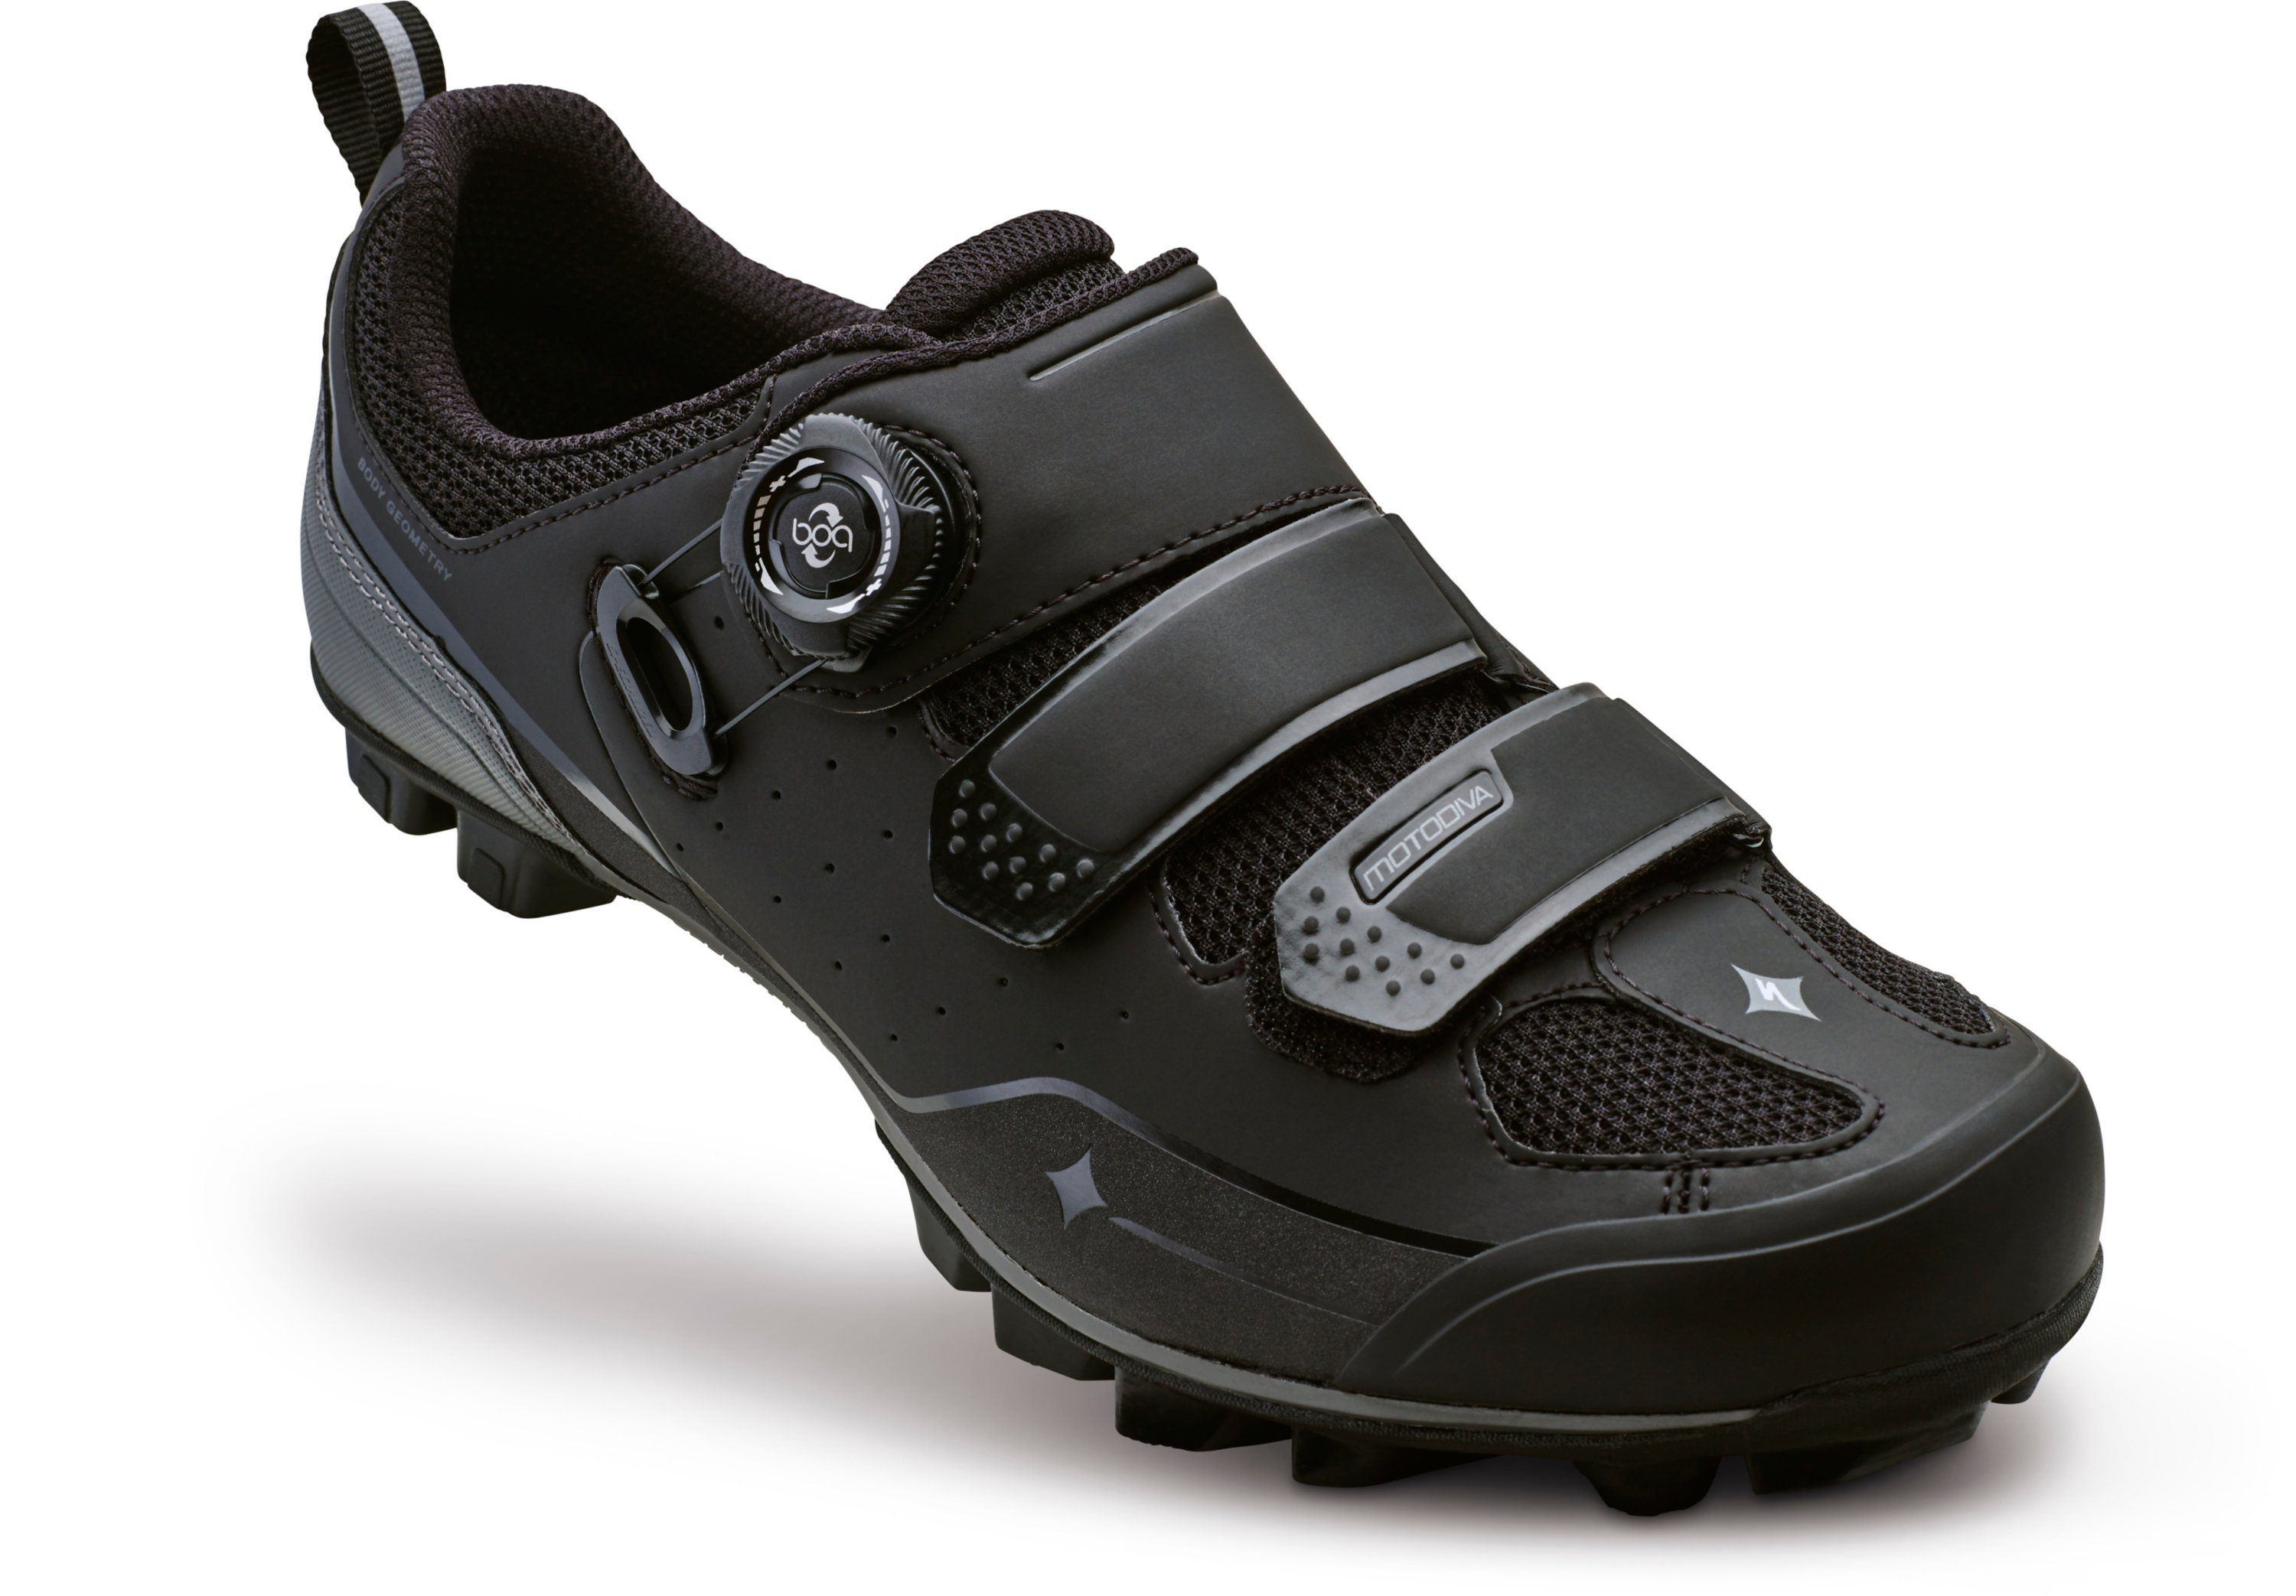 SPECIALIZED MOTODIVA MTB SHOE WMN BLK/DKGRY 36/5.75 - Alpha Bikes